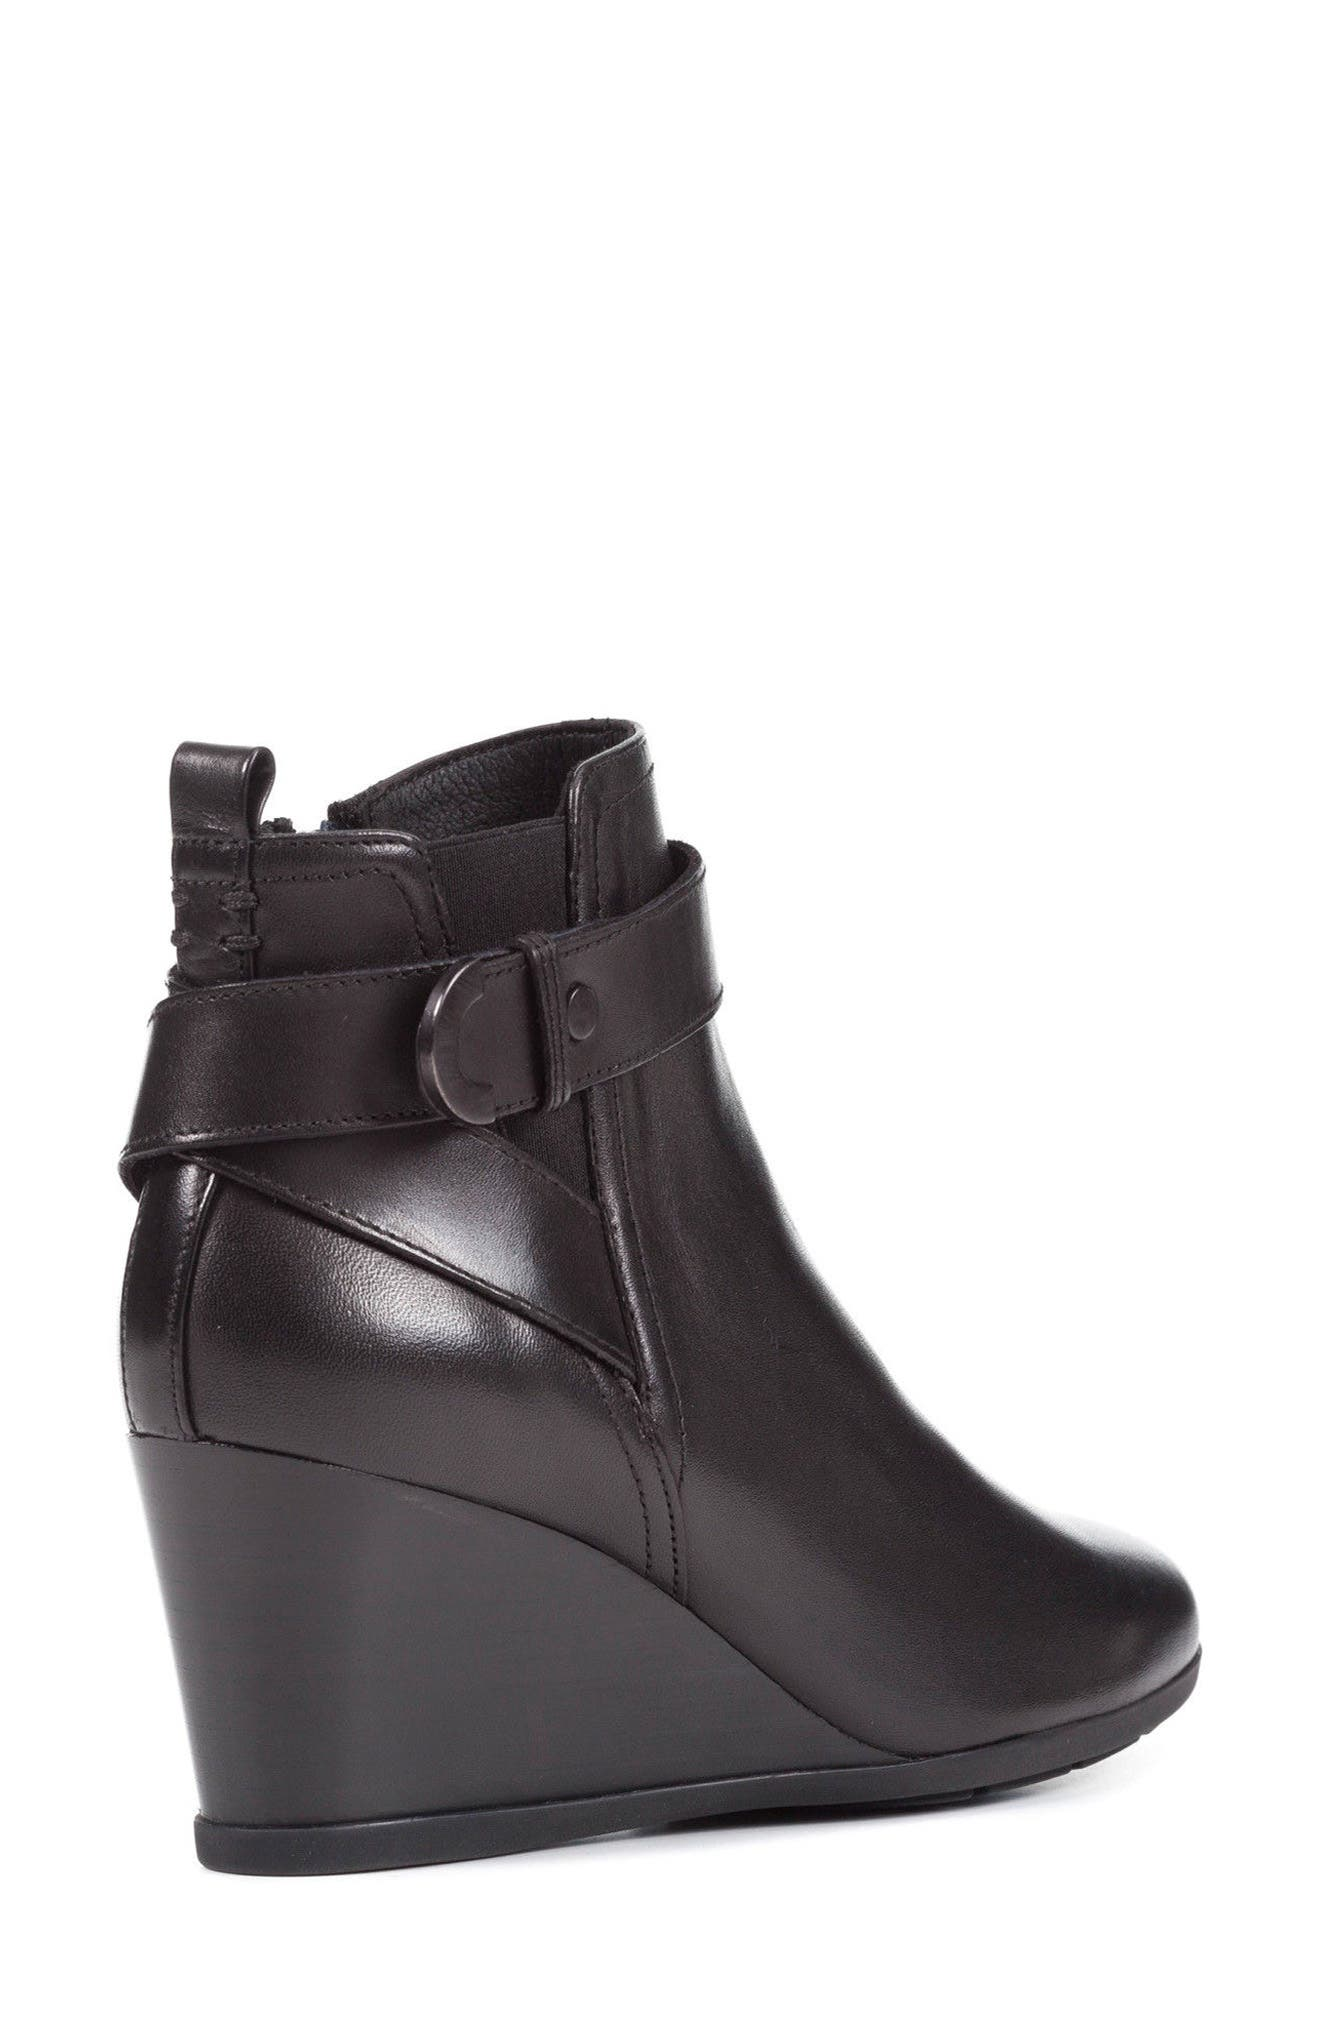 Inspiration Buckle Wedge Bootie,                             Alternate thumbnail 2, color,                             001